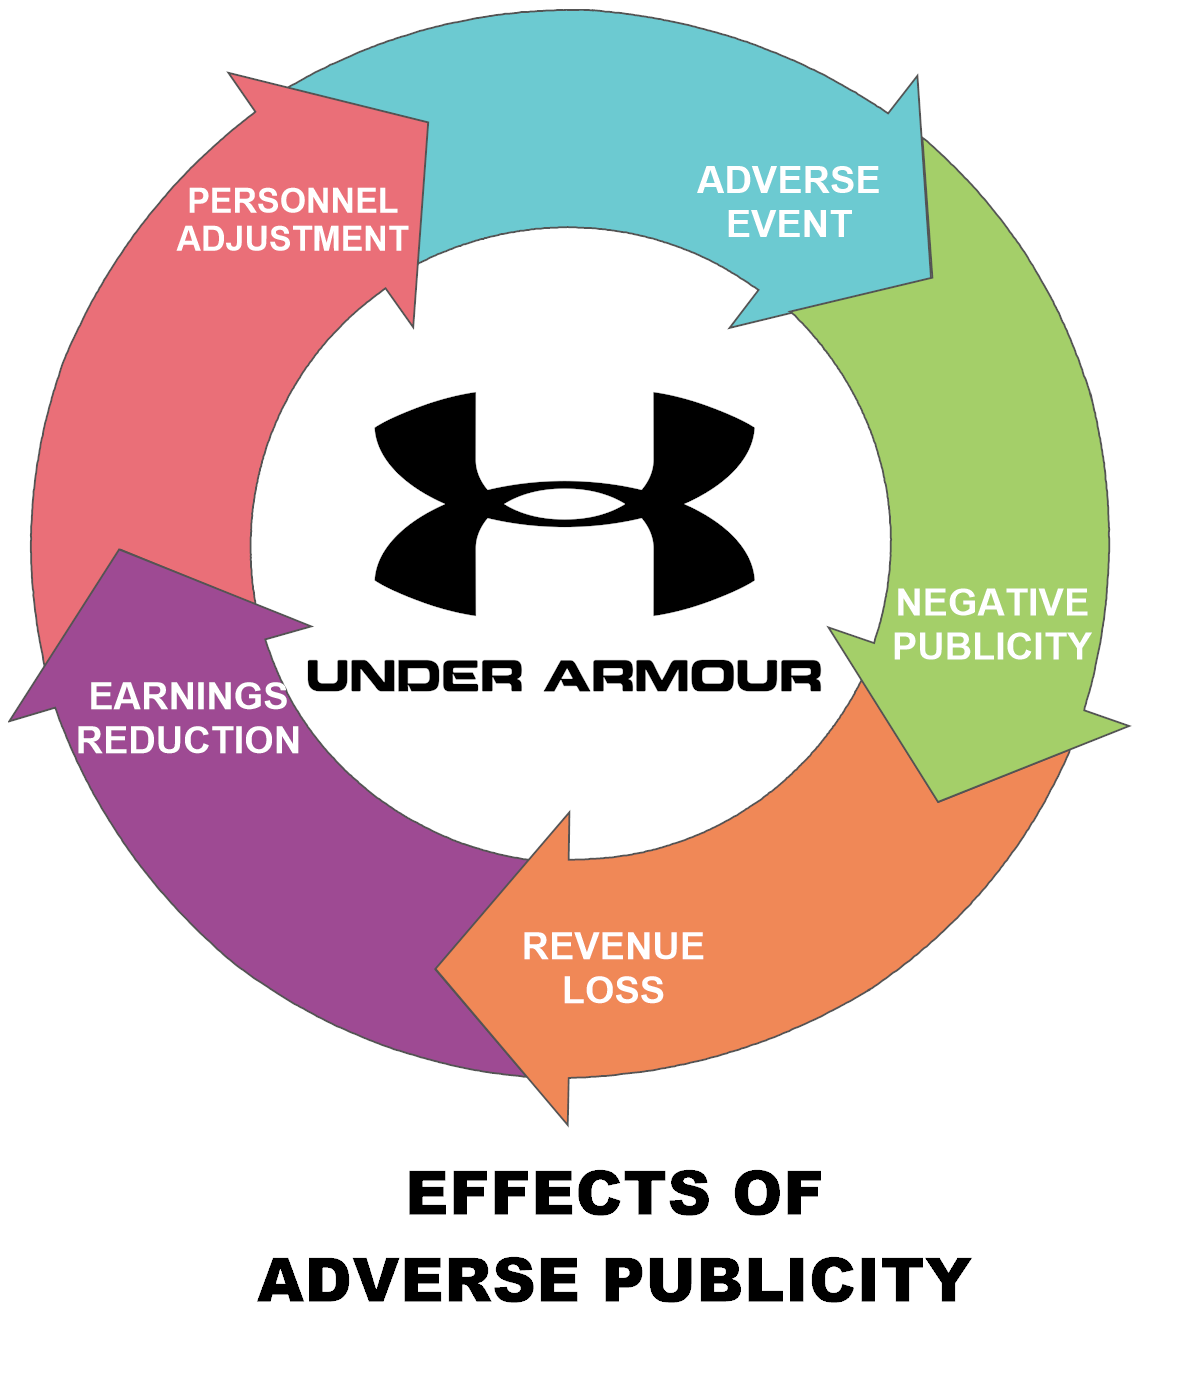 Am I Next? Under Armour Layoffs and Restructuring